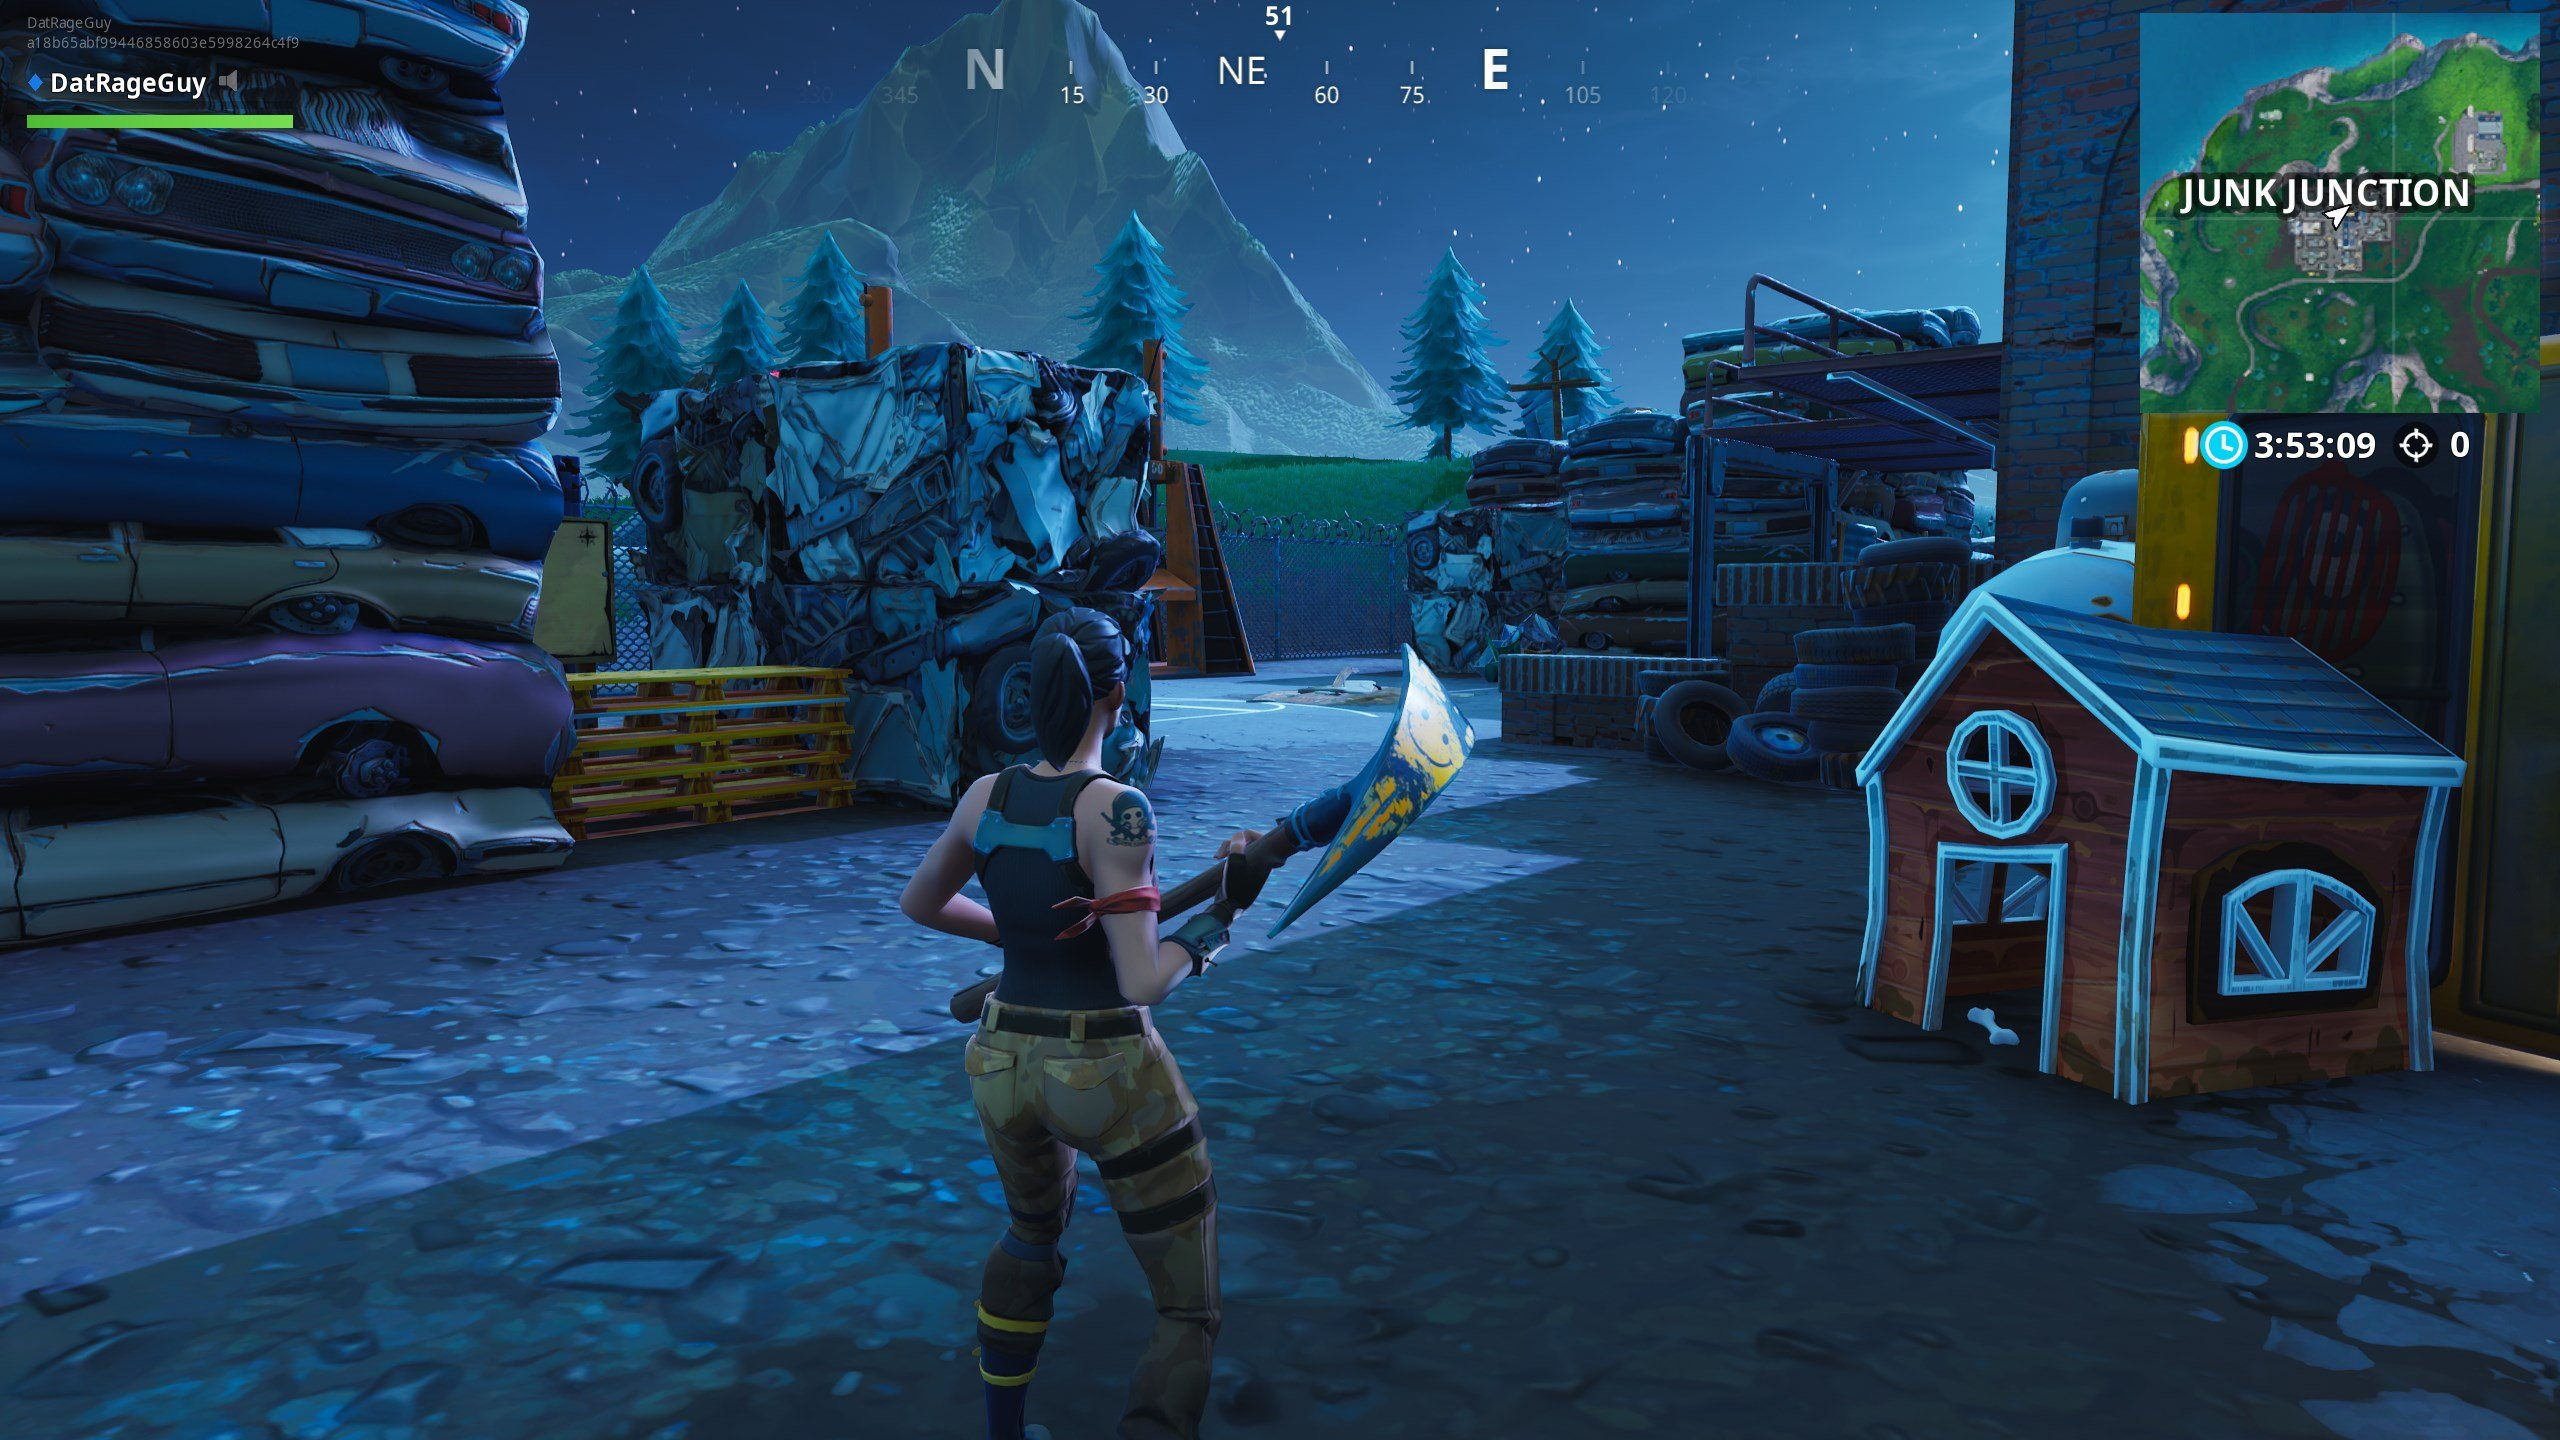 Treasure map signpost location in Junk Junction - Fortnite